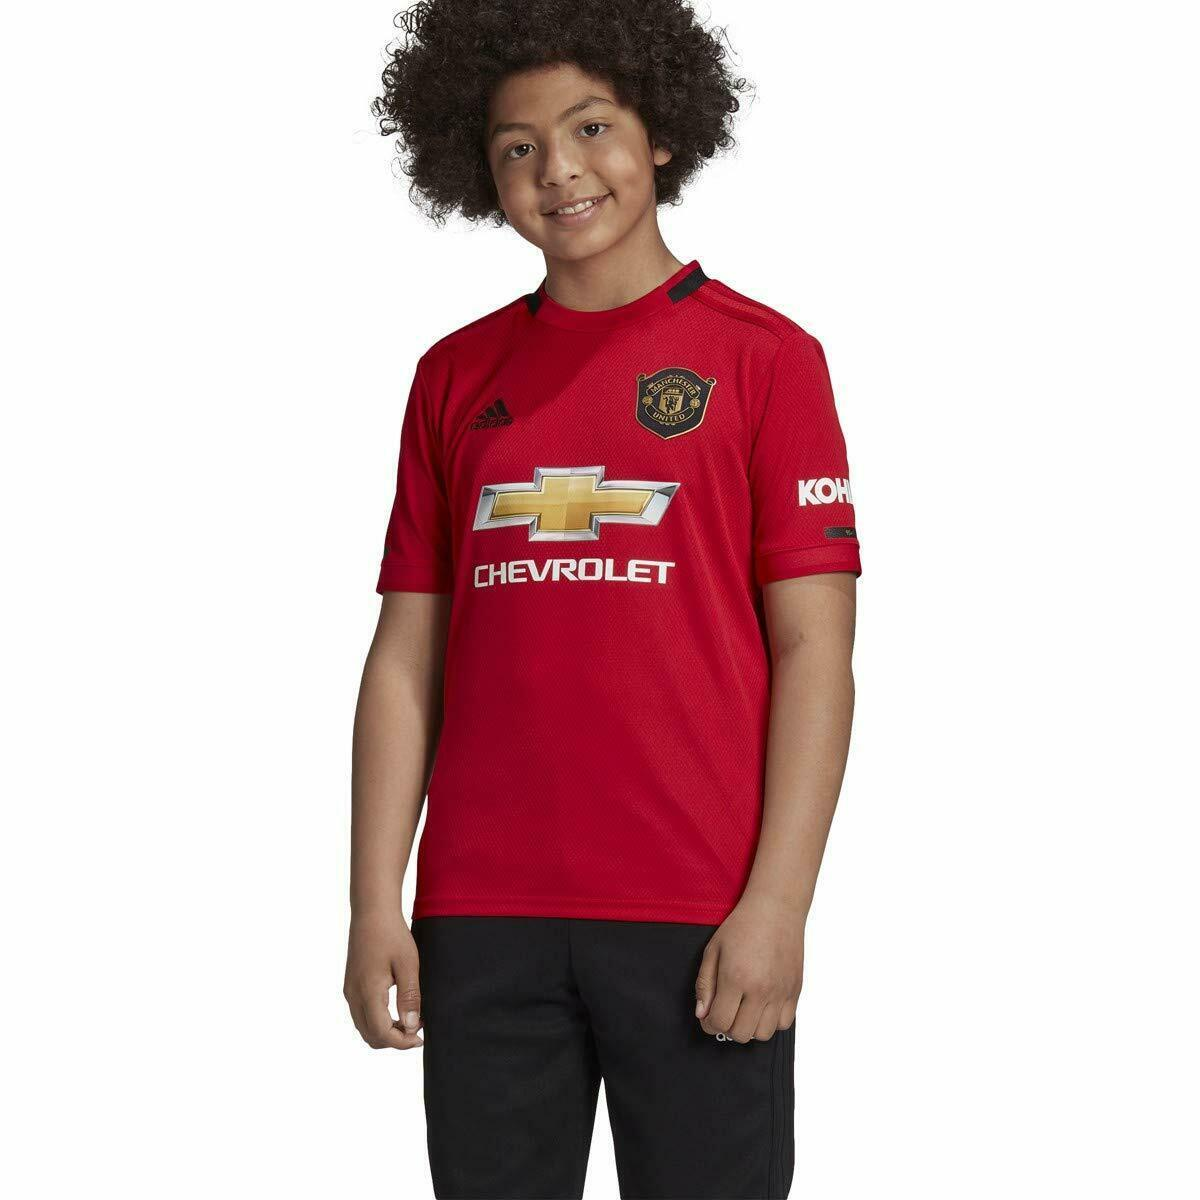 adidas Youth Soccer Manchester United Home Jersey Youth Small Red/Black - $44.50